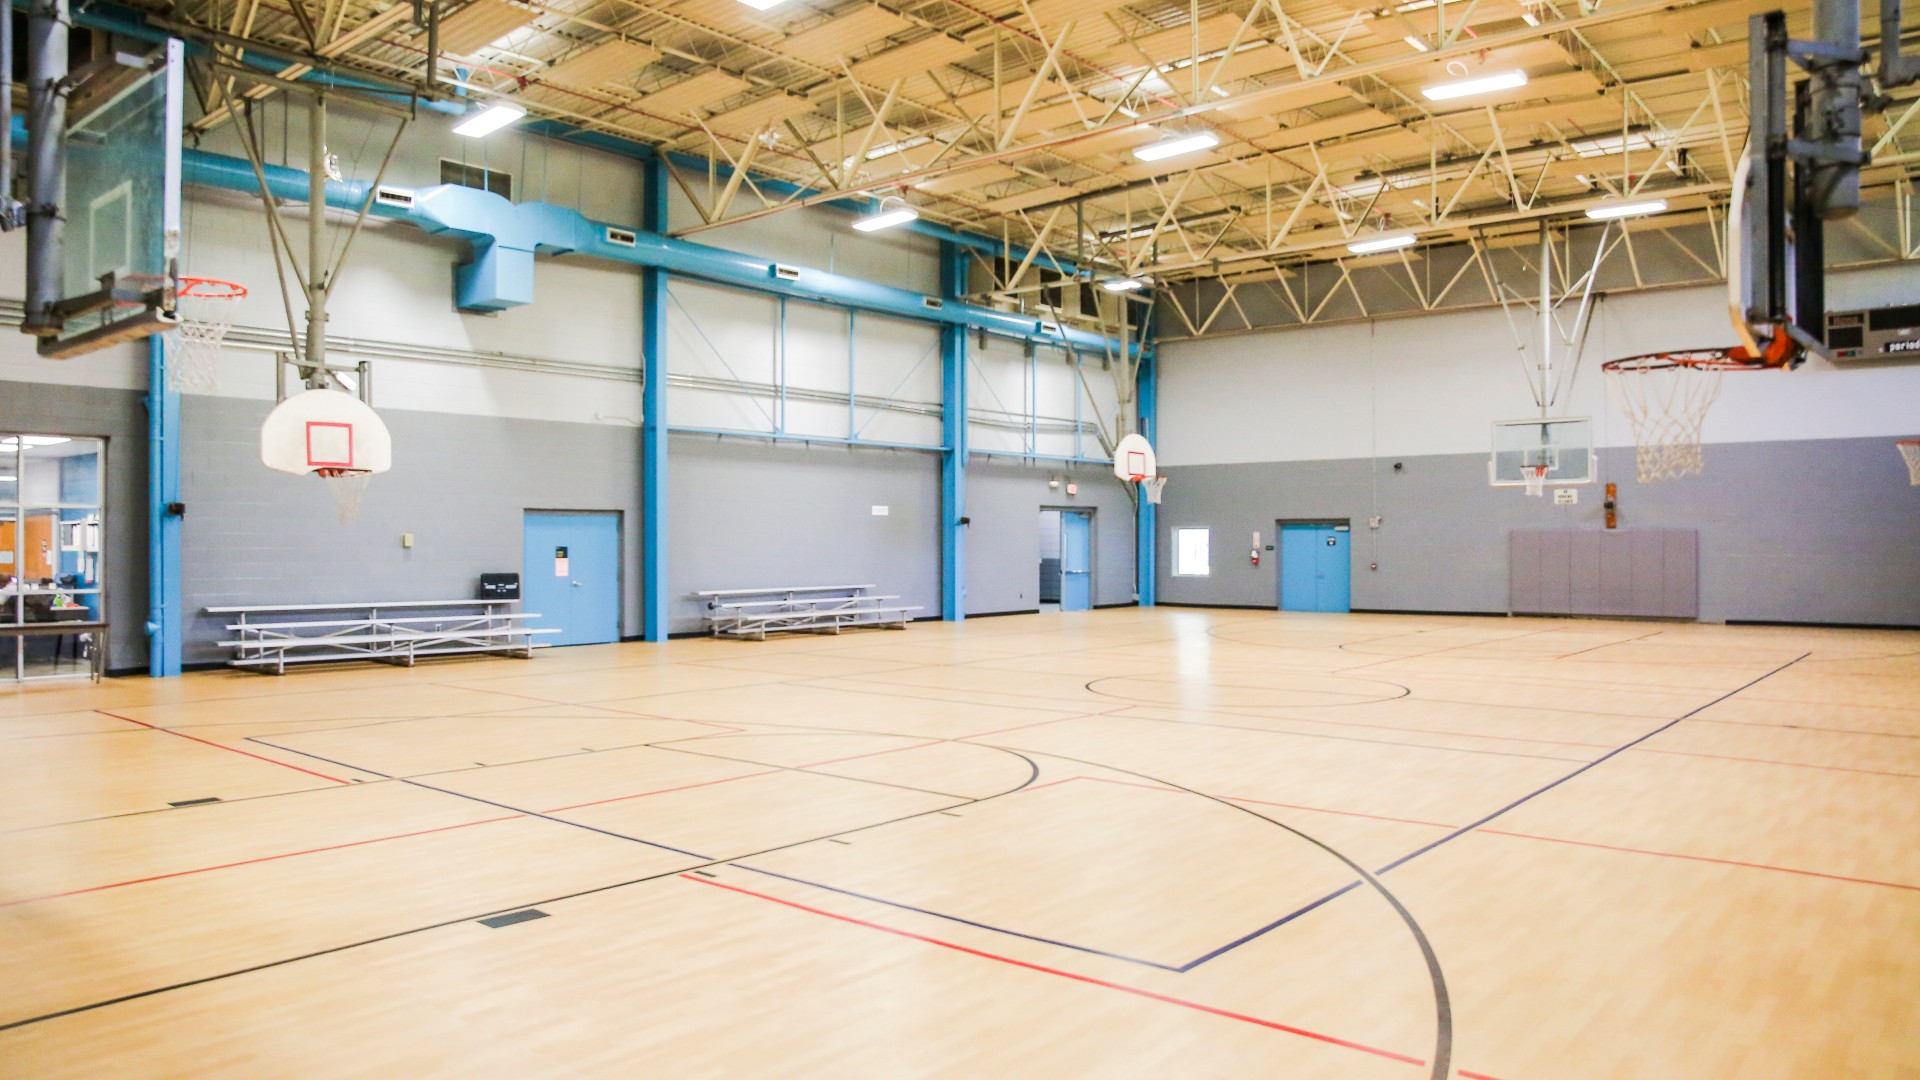 One of two gymnasiums with basketball courts at Green Road Park